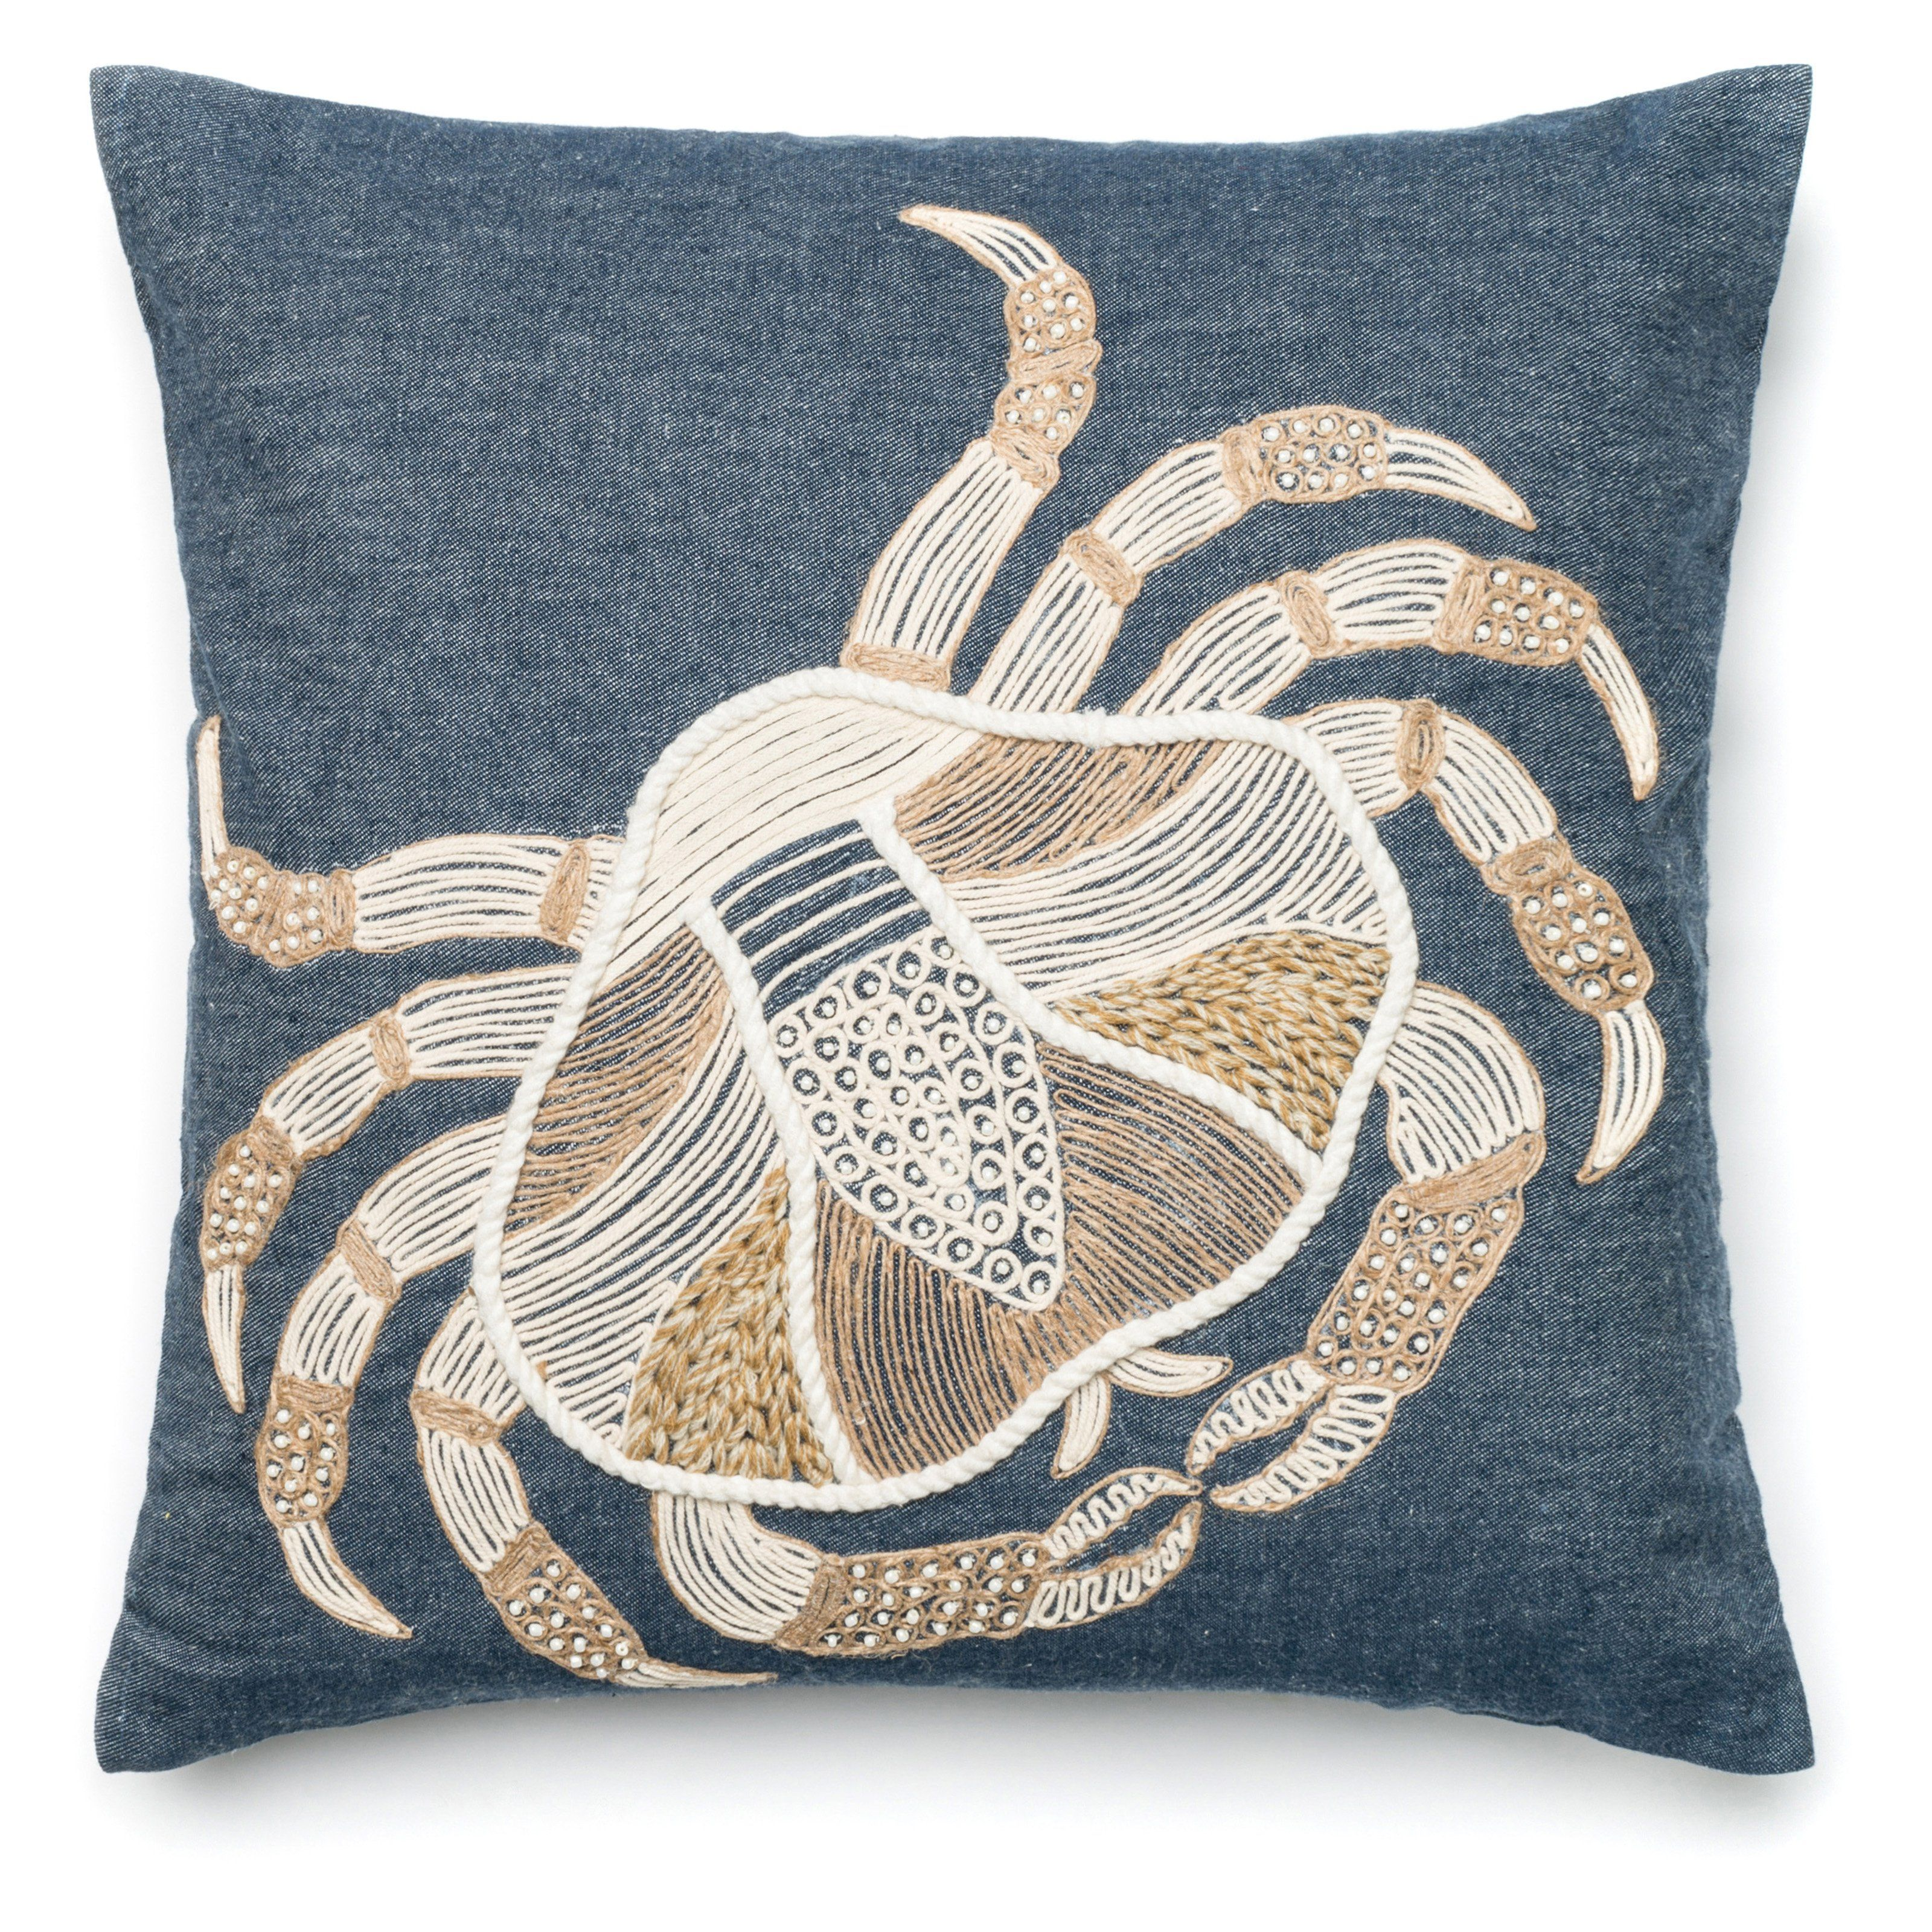 Loloi P0342 Decorative Pillow | from hayneedle.com